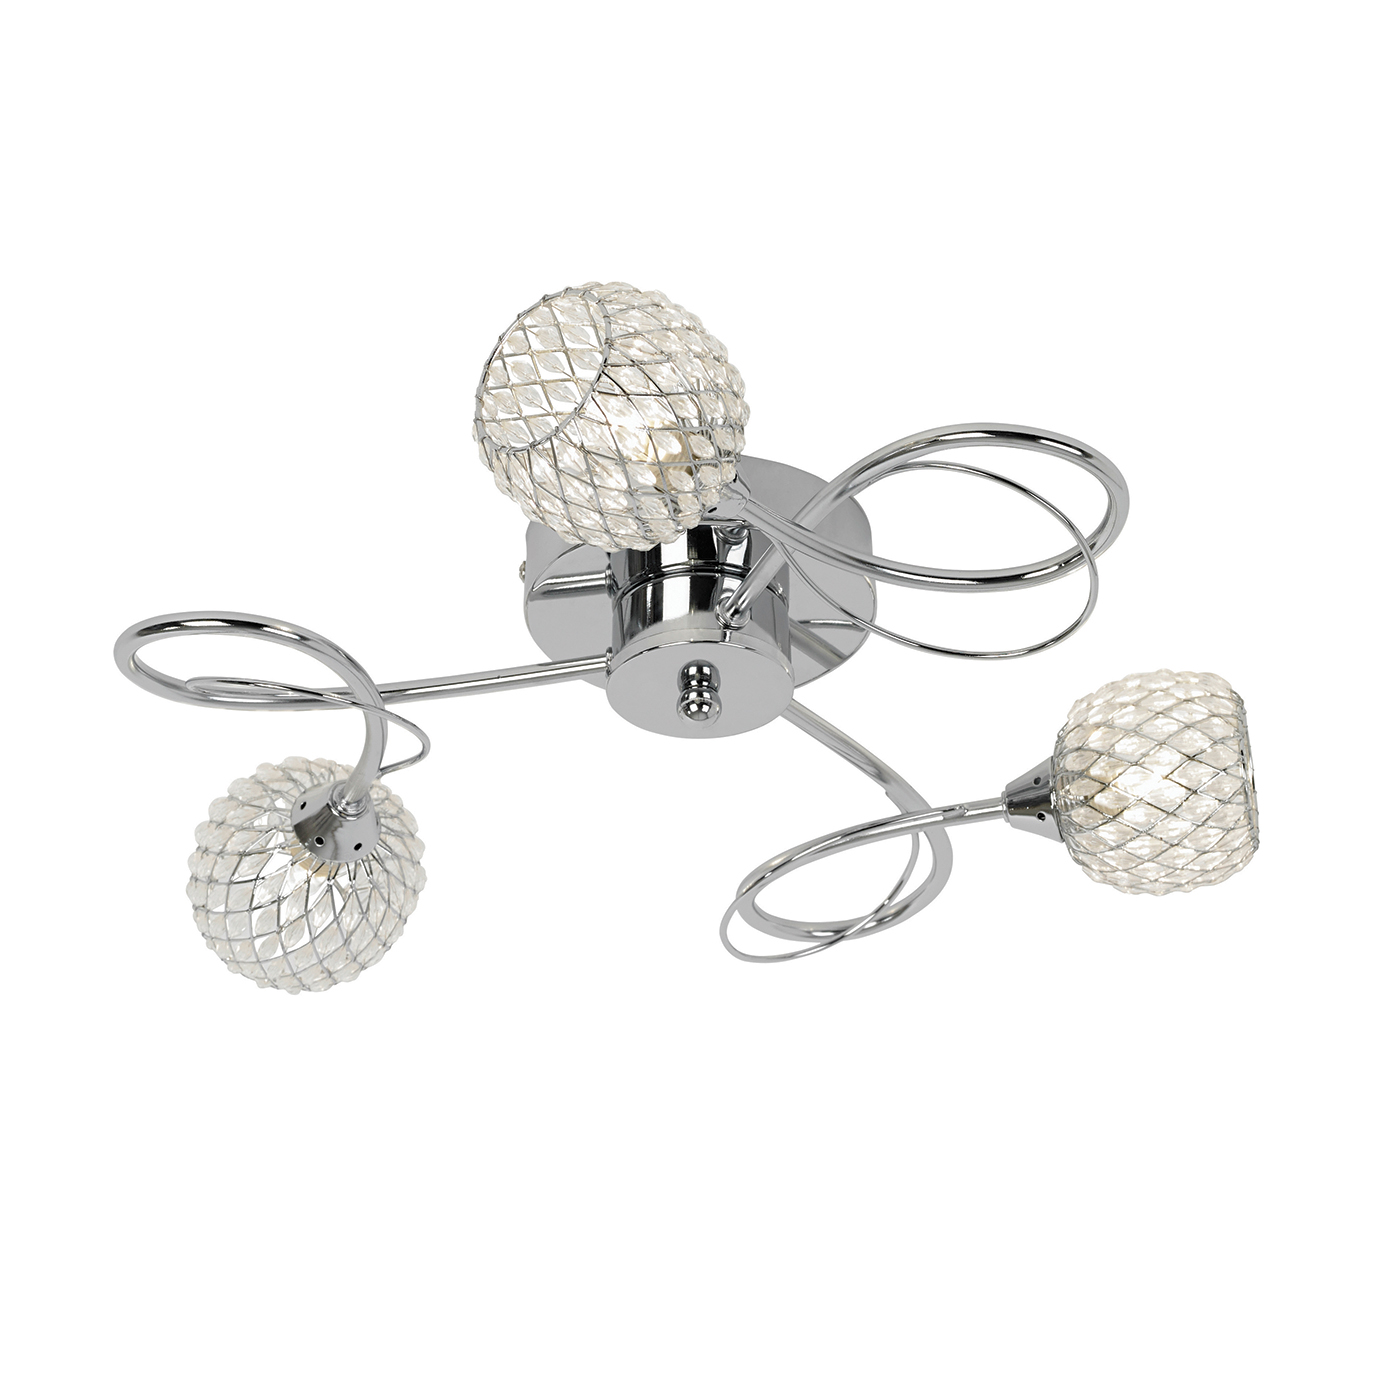 Endon Aherne ceiling light 3x 33W Chrome effect chrome